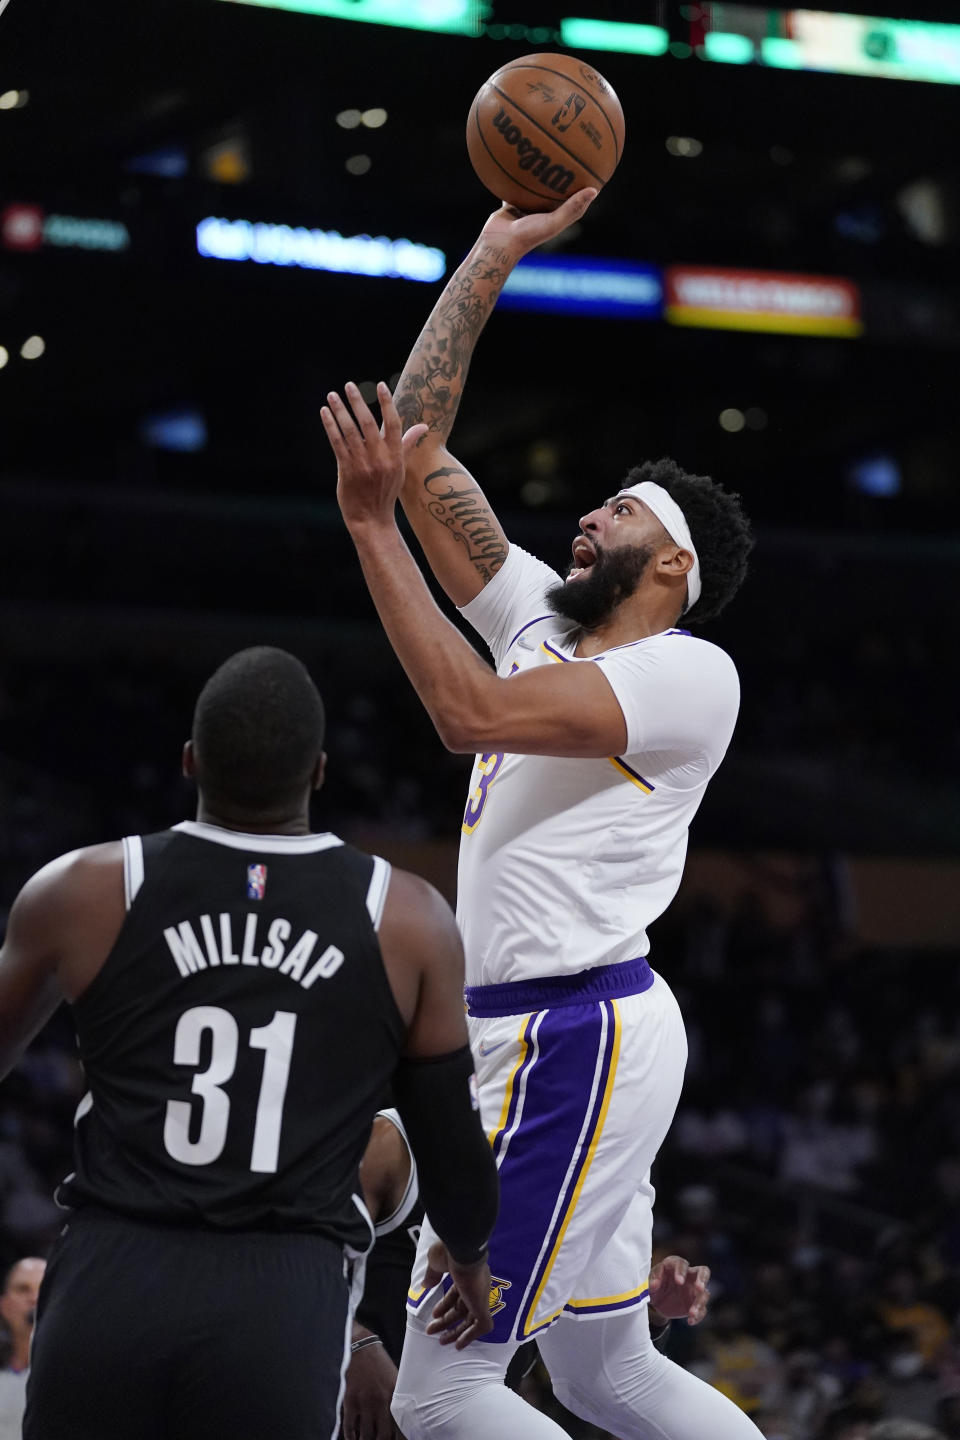 Los Angeles Lakers forward Anthony Davis, right, shoots as Brooklyn Nets forward Paul Millsap defends during the first half of a preseason NBA basketball game Sunday, Oct. 3, 2021, in Los Angeles. (AP Photo/Mark J. Terrill)